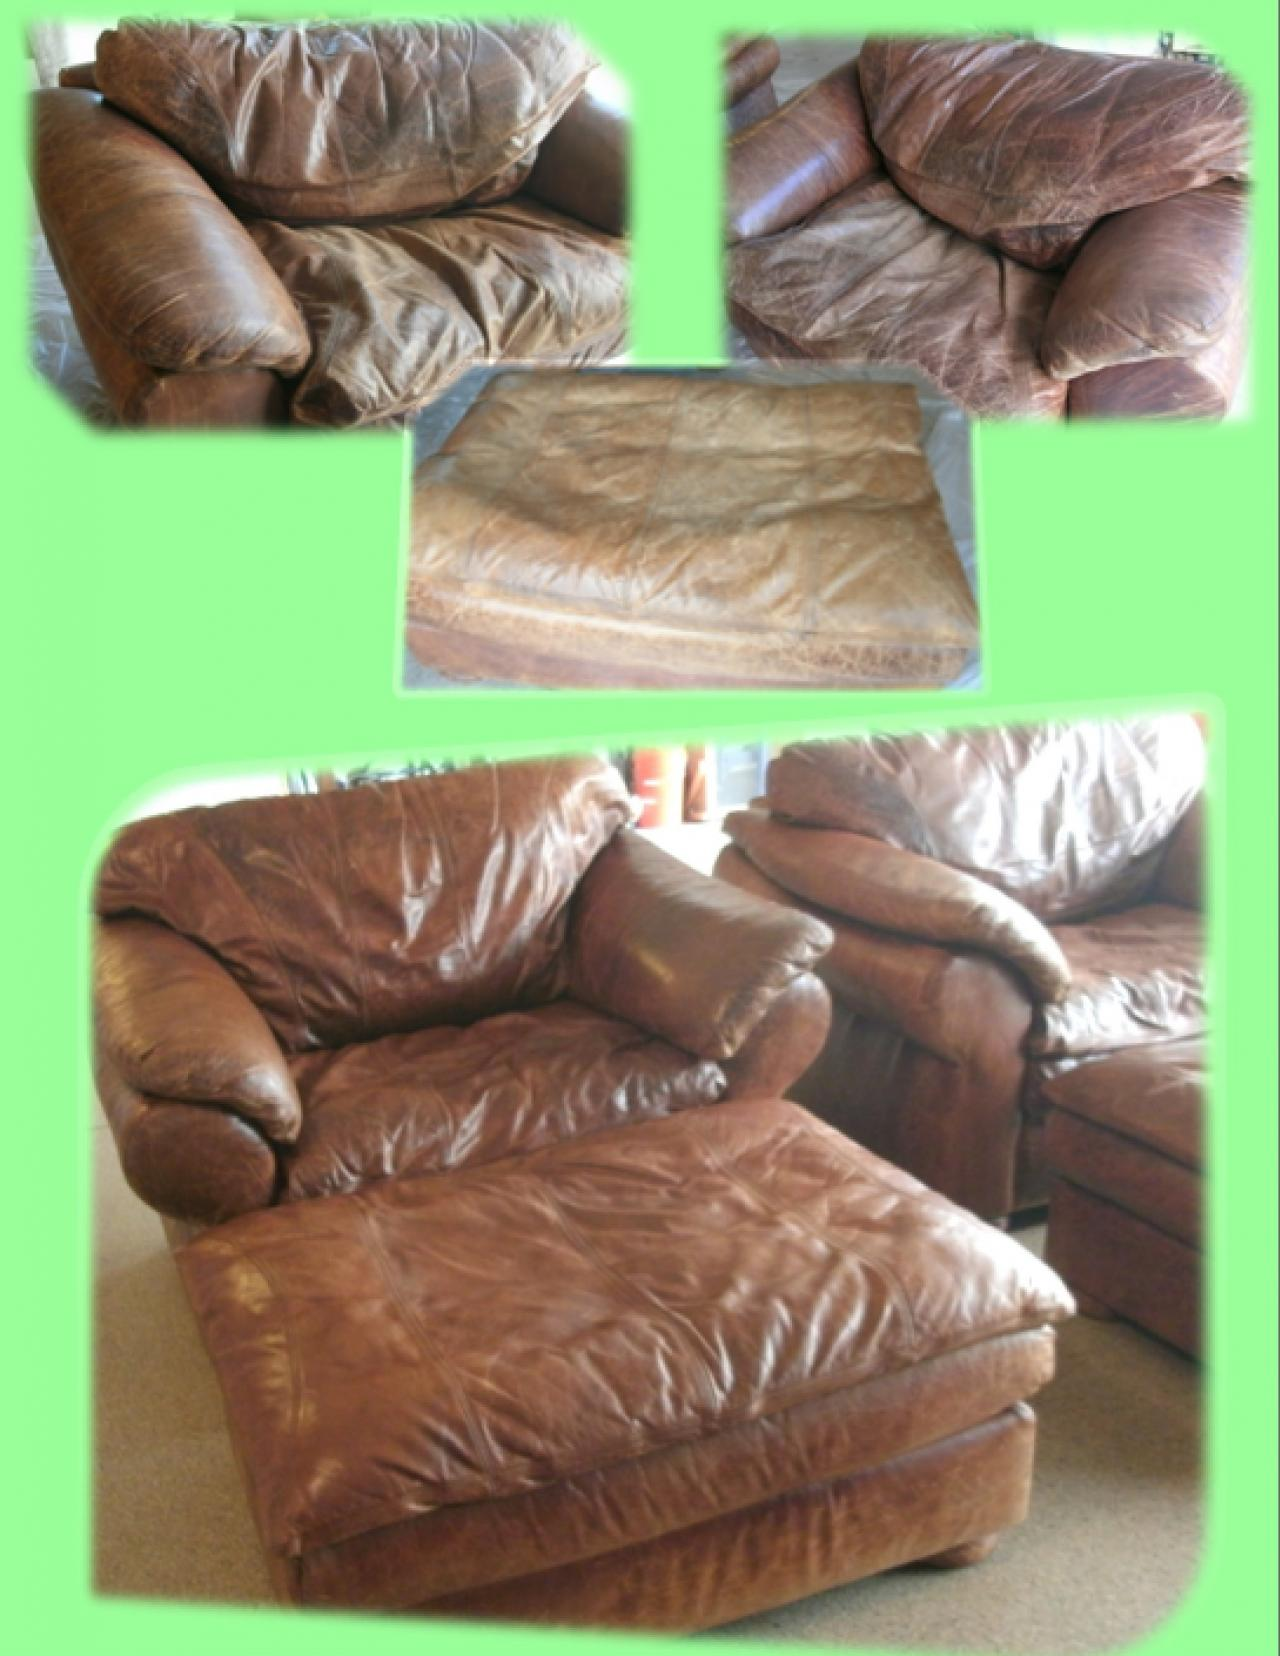 Homemade Leather Furniture Conditioner #36: Inexpensive And Effective Homemade Leather Cleaner Recipe Diy. Image Led Clean A Leather Sofa ...